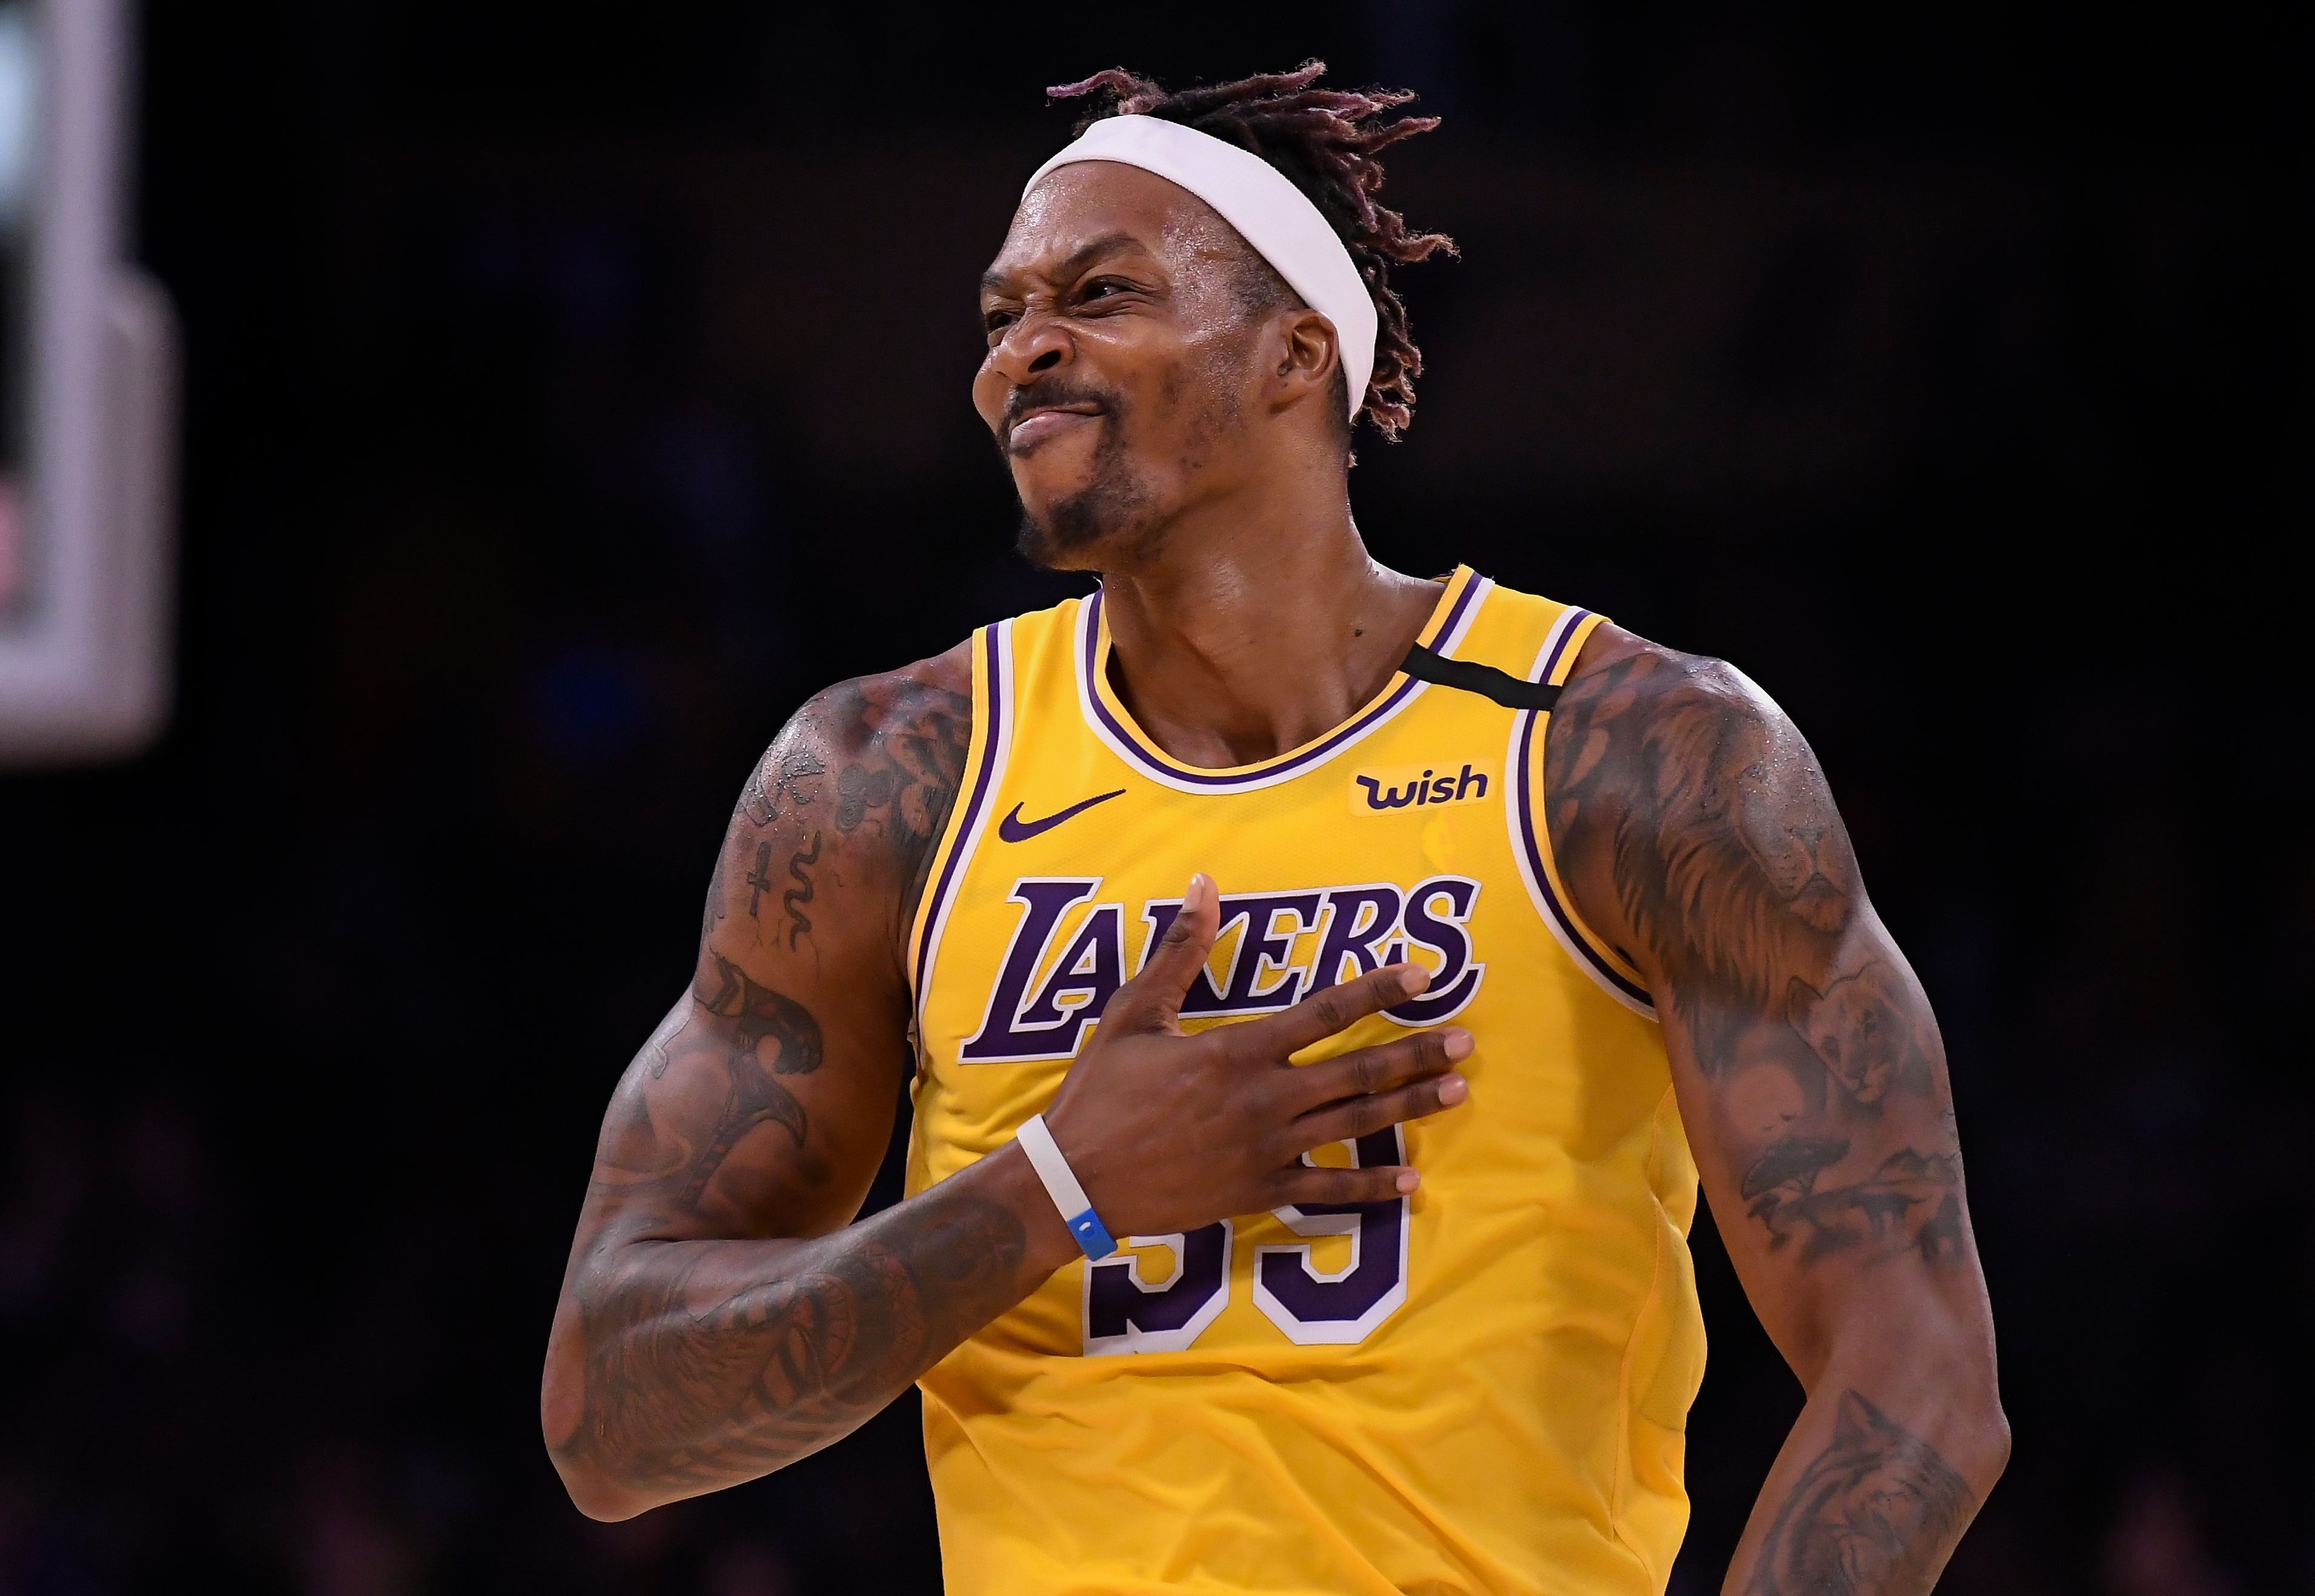 What happened between Dwight Howard and the Lakers?